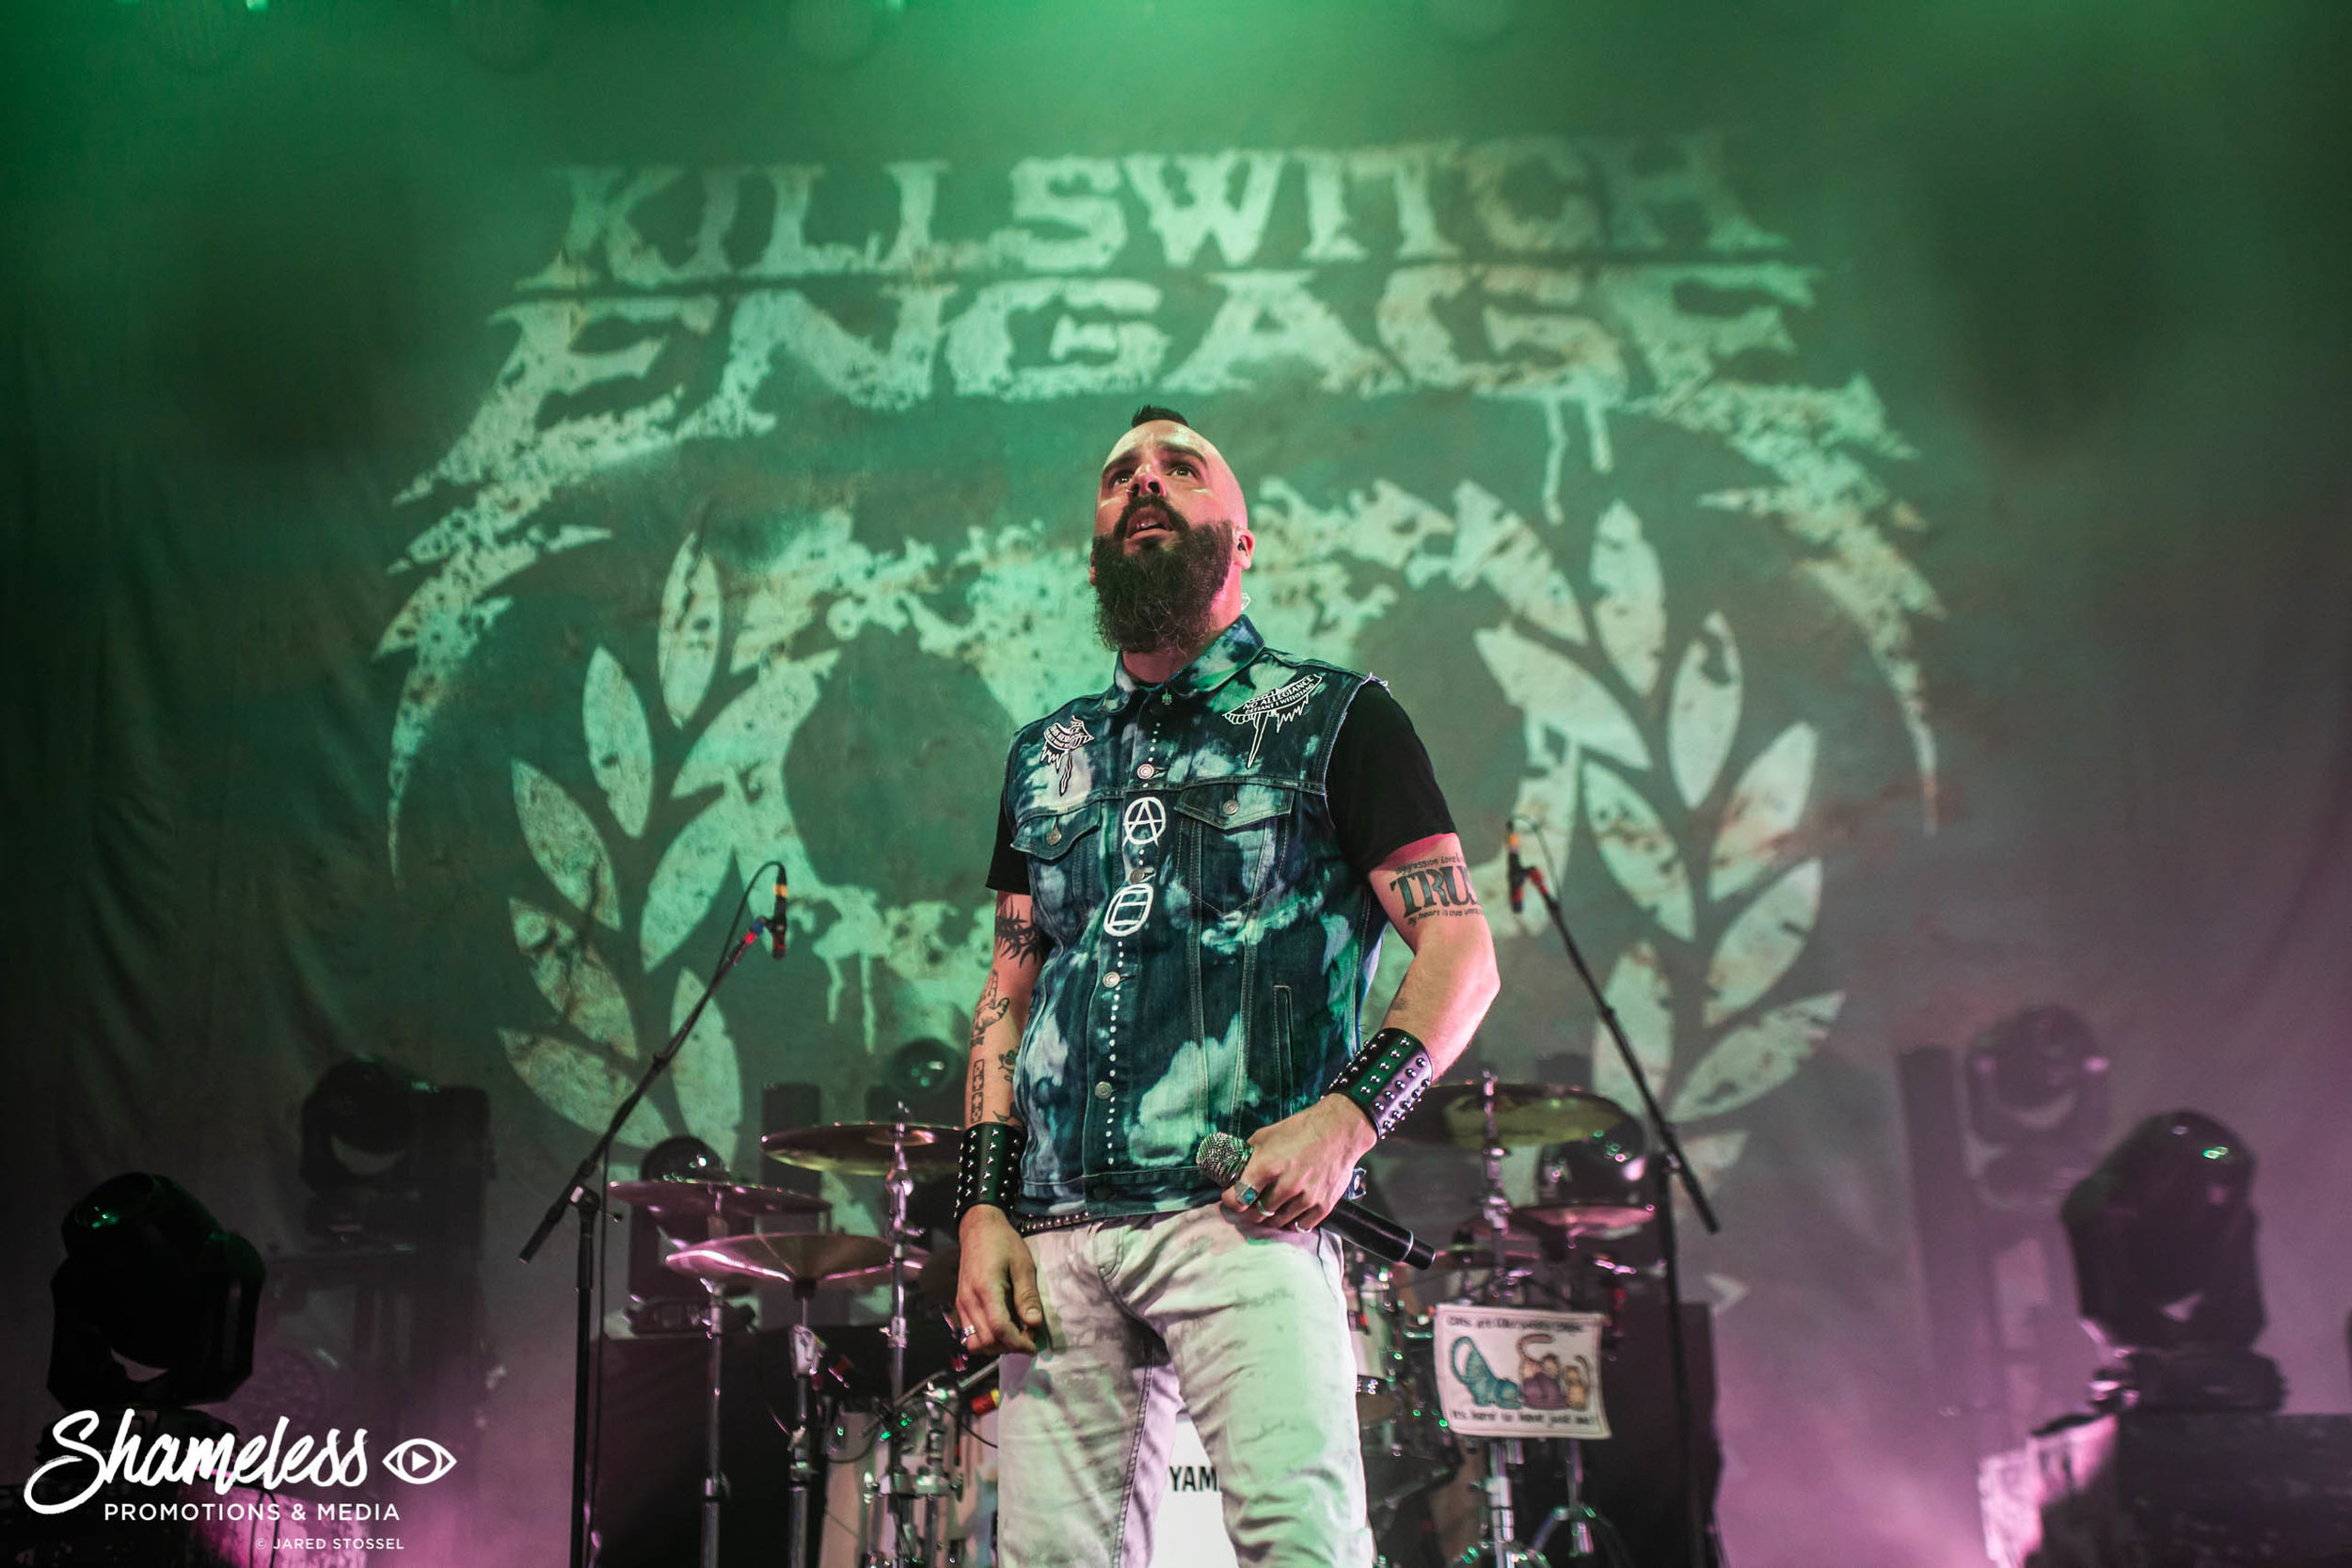 Jesse Leach of Killswitch Engage at The Warfield in San Francisco, CA. April 18, 2019. Photo Credit: Jared Stossel